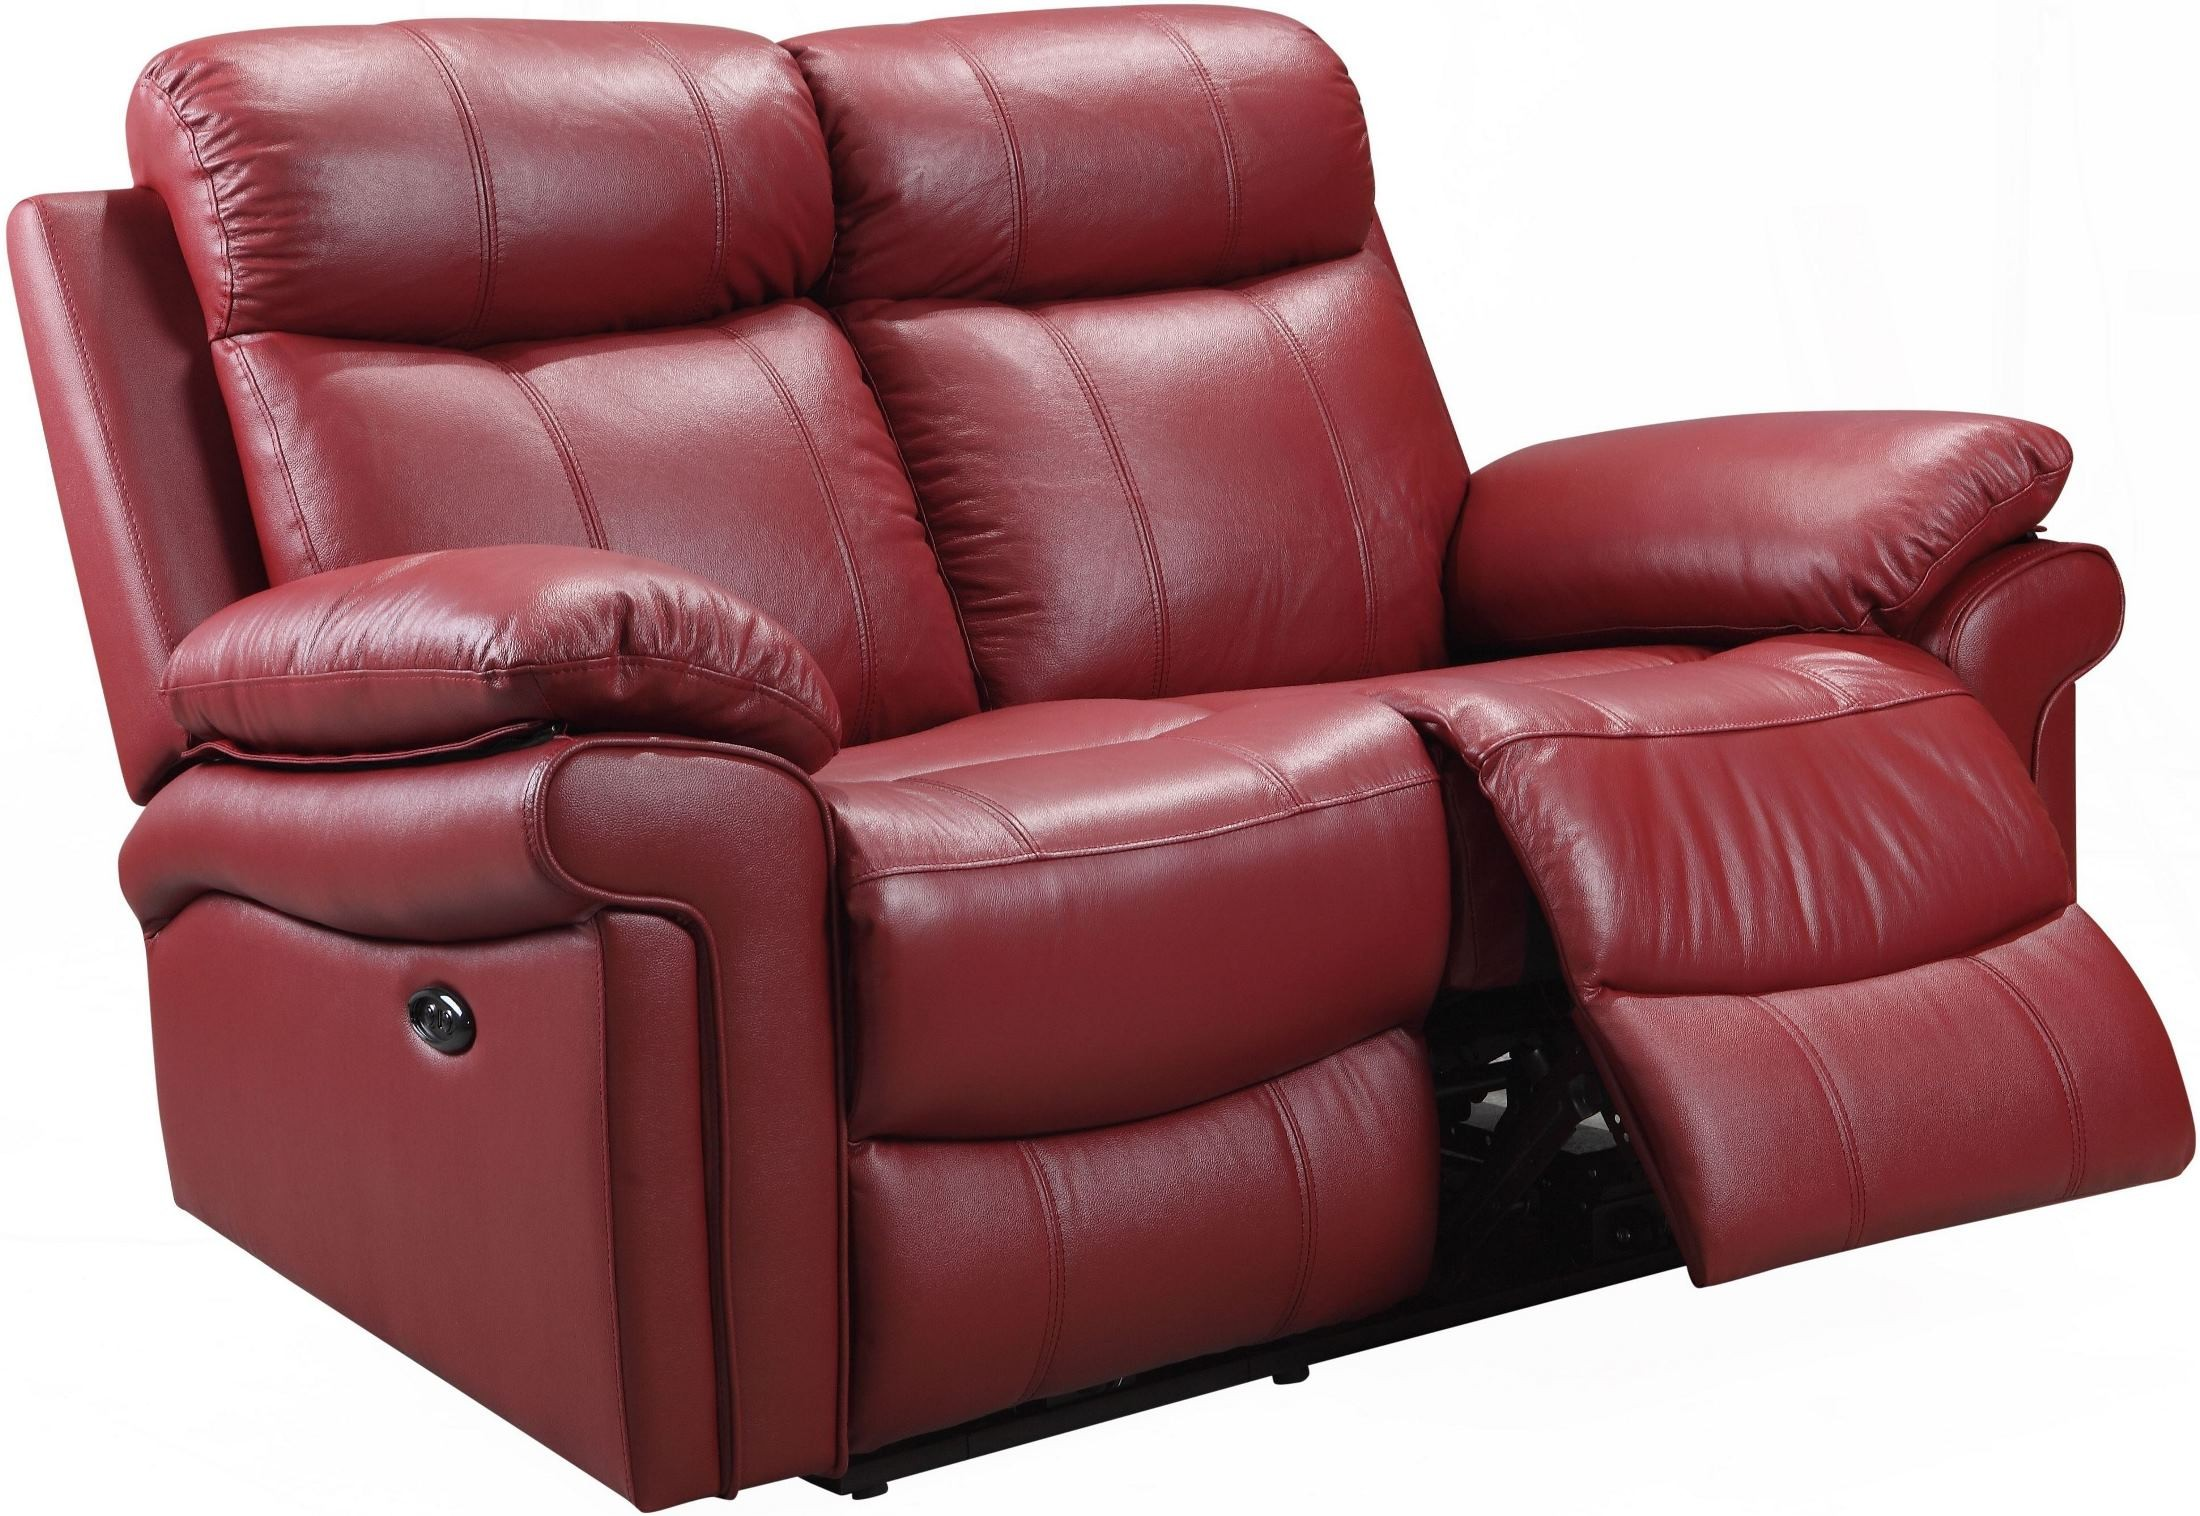 Shae Joplin Red Leather Power Reclining Loveseat From Luxe